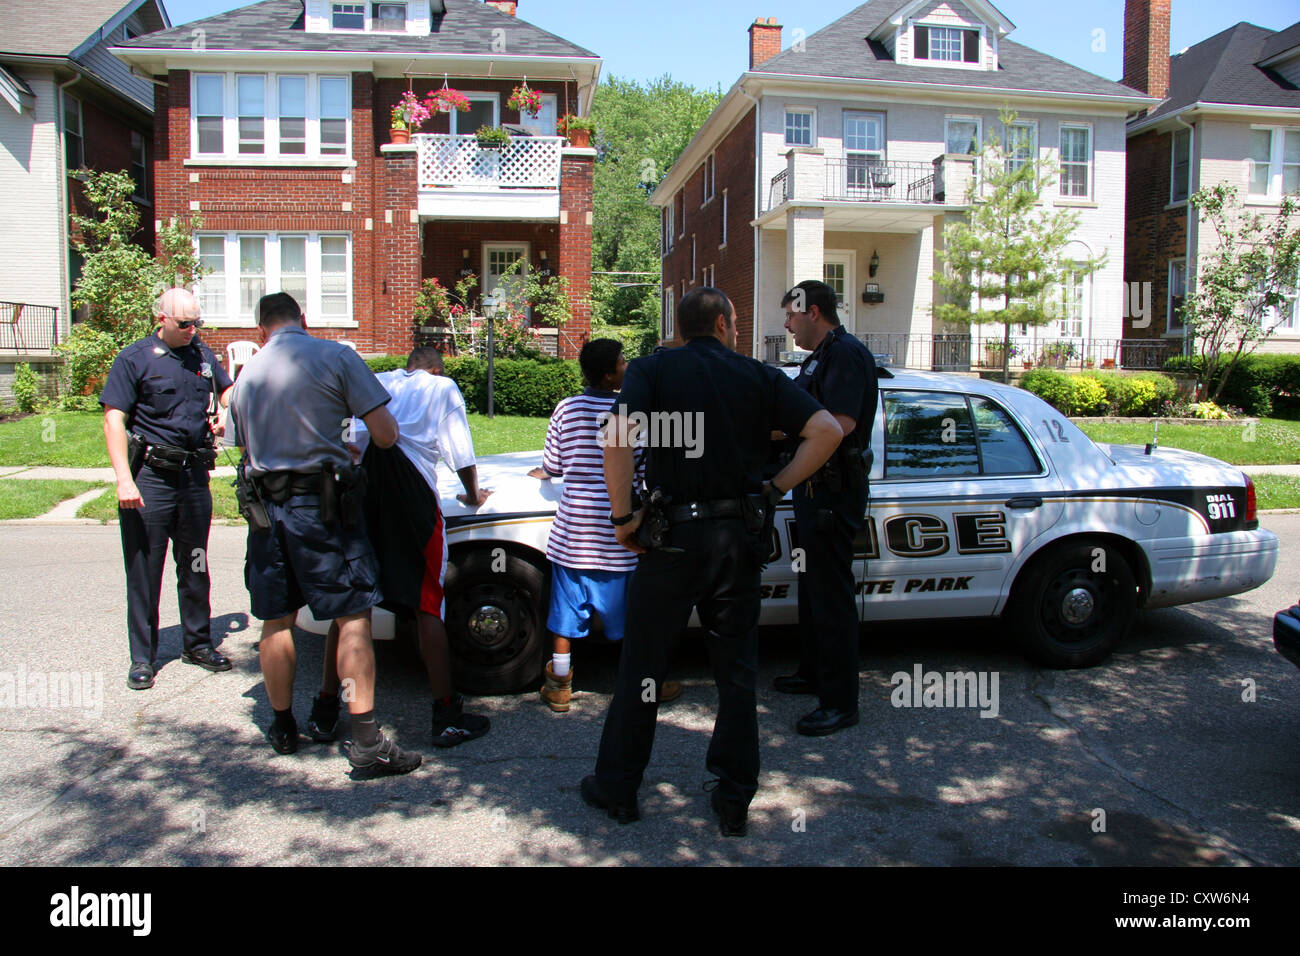 Cops from Grosse Pointe Park police department detain and search two youths, Michigan, USA - Stock Image